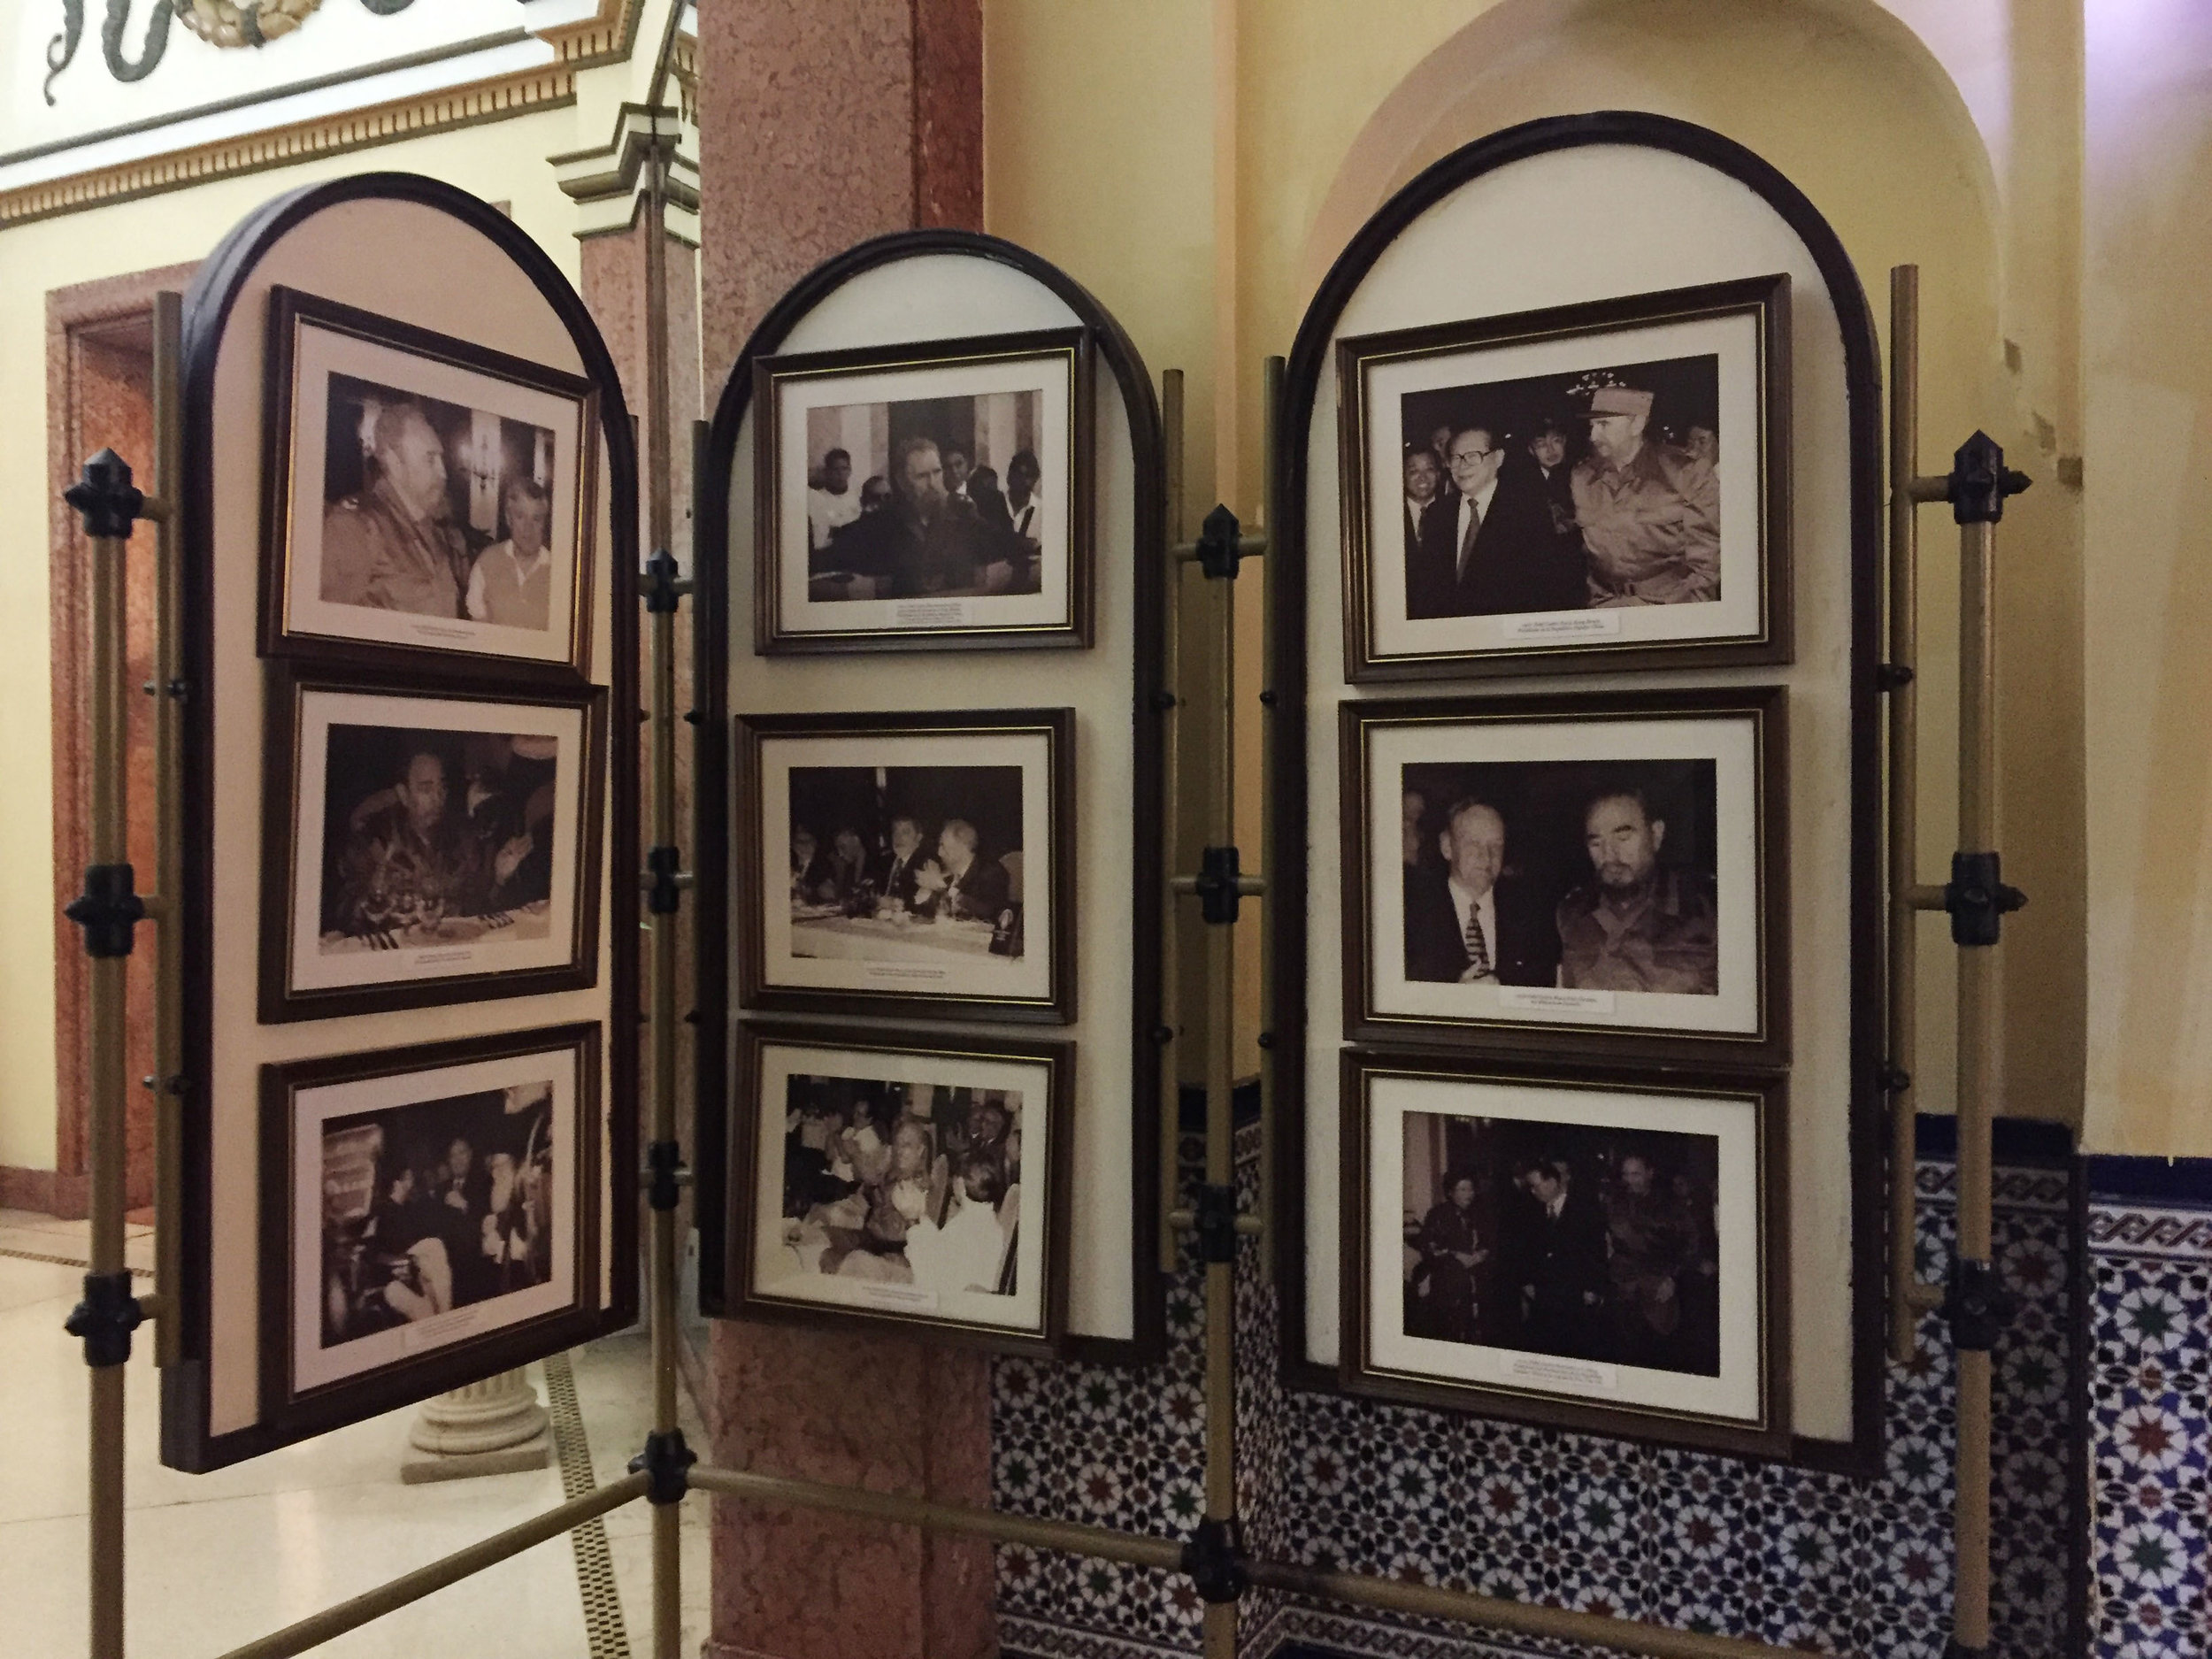 Photos of Fidel in the lobby...